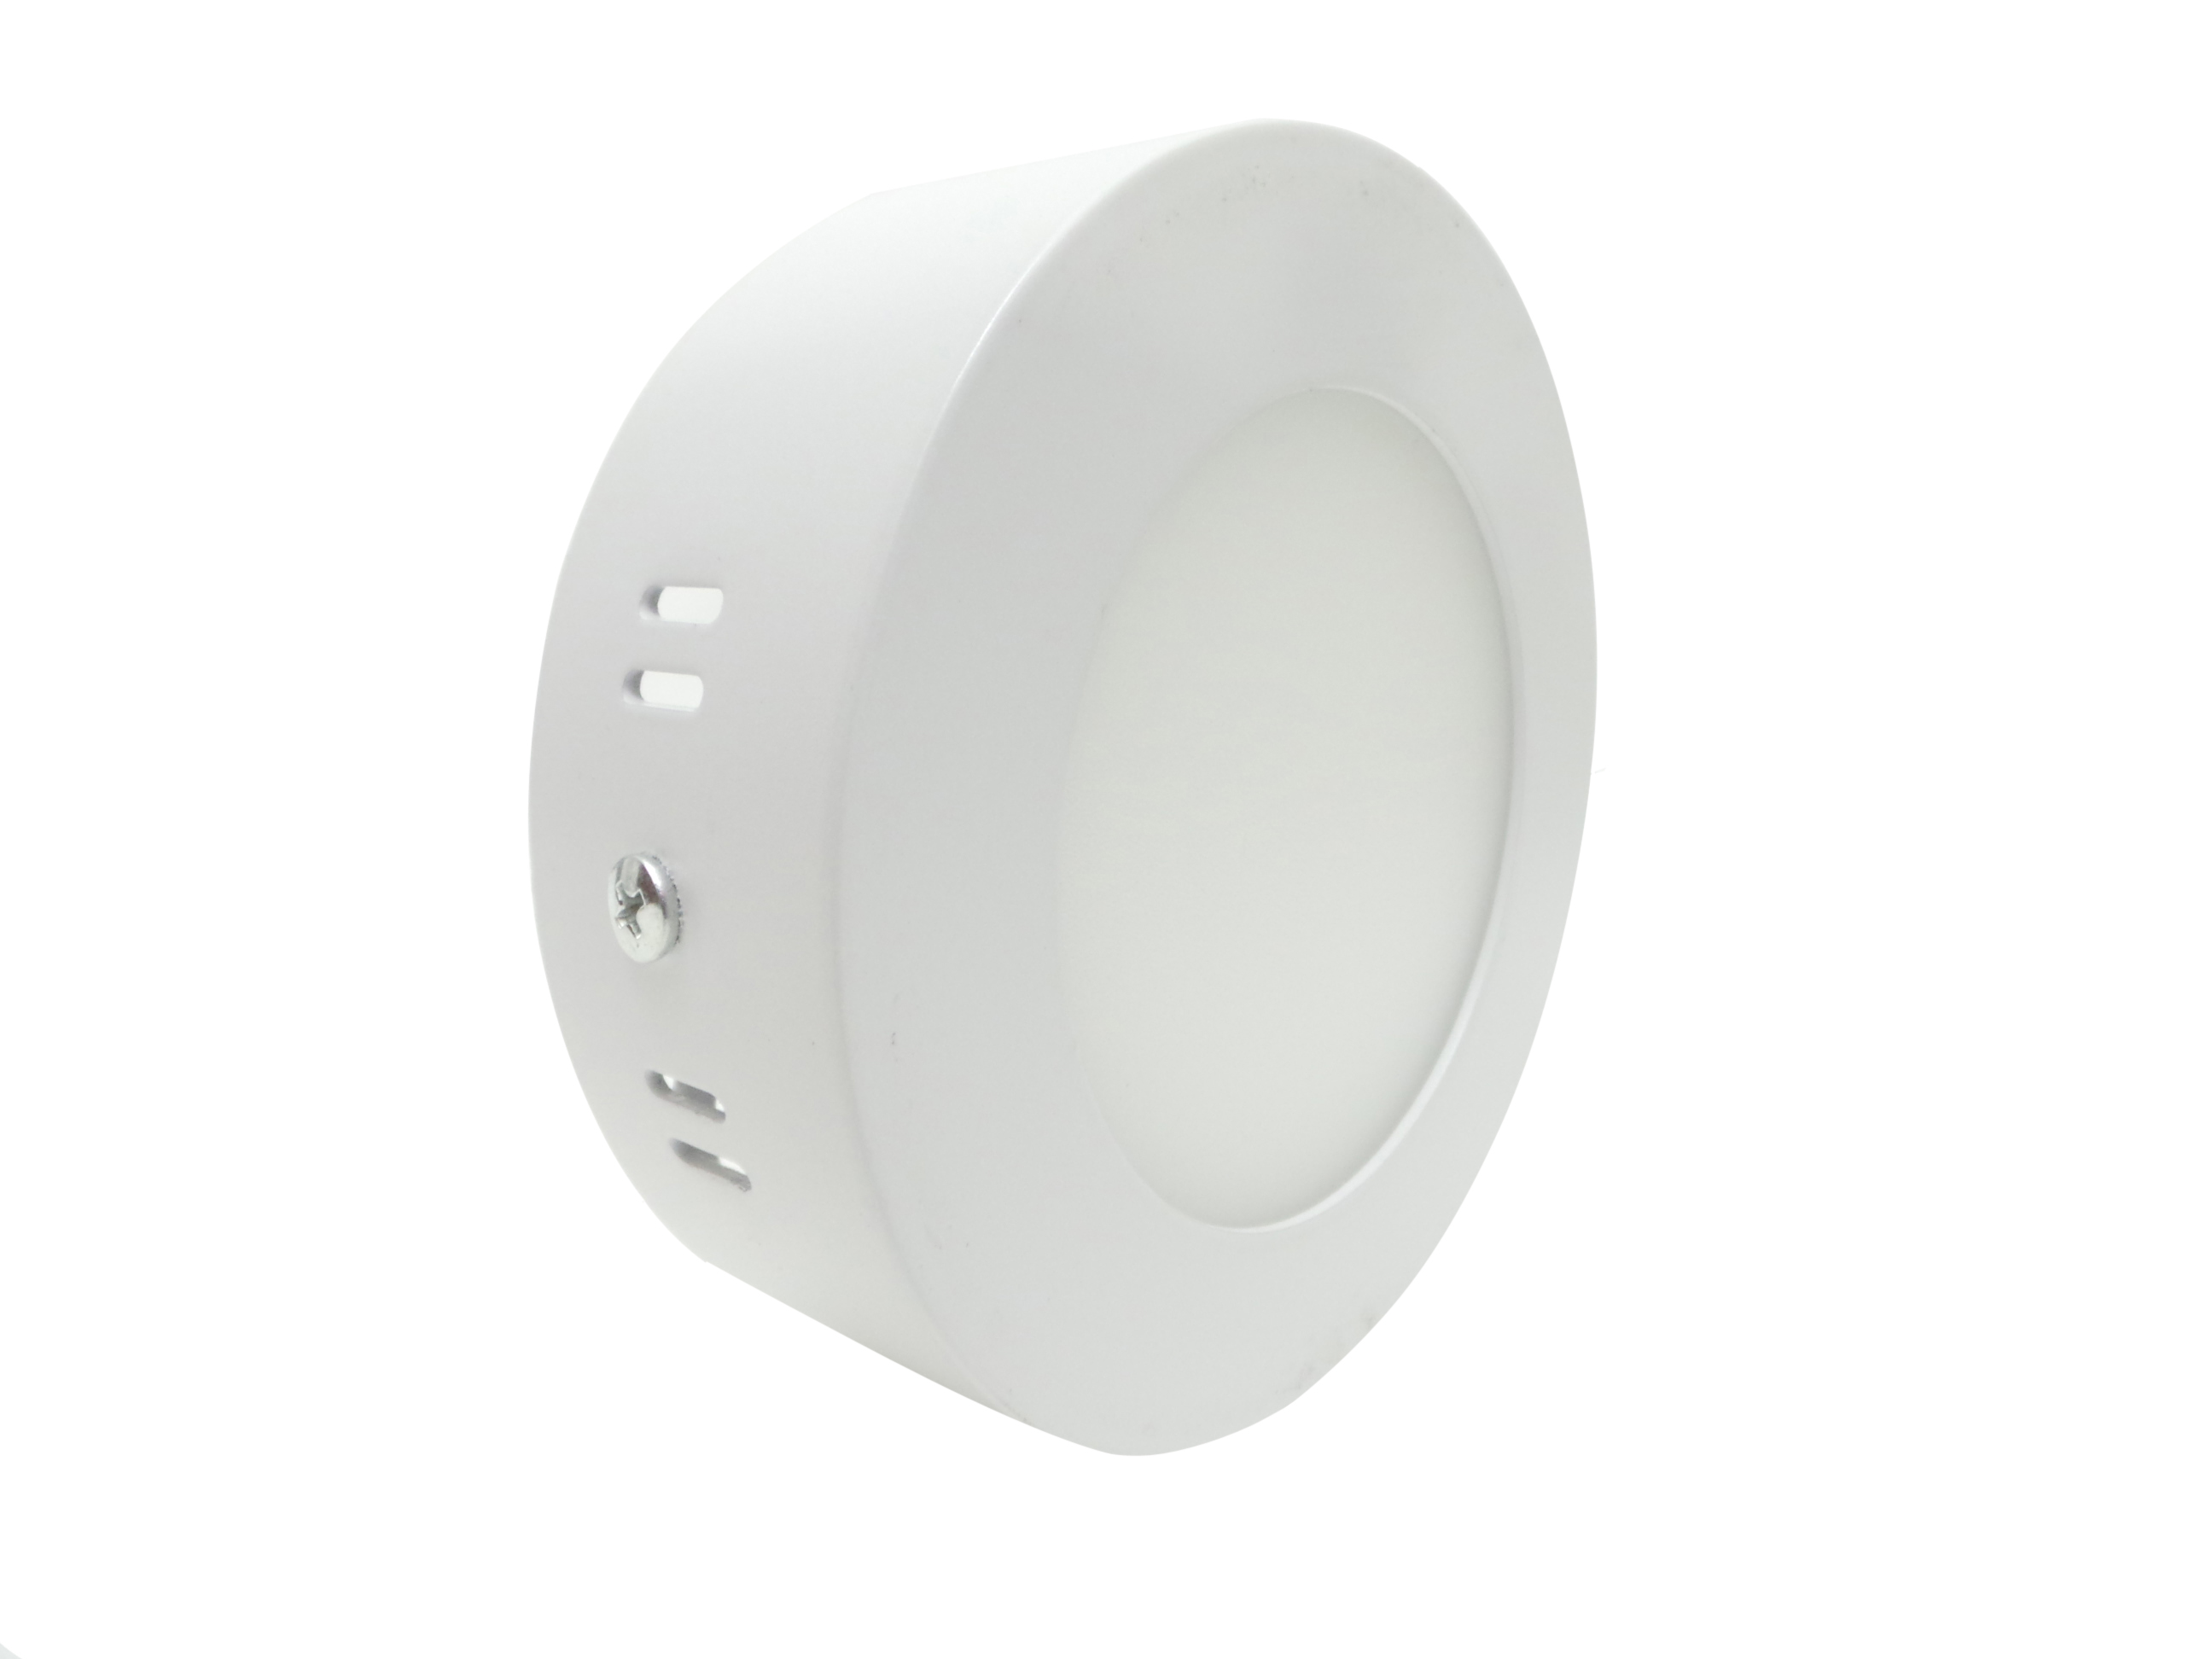 Plafoniera Led A Soffitto : Pl0 6w offerte plafoniere pannelli led silamp plafoniera